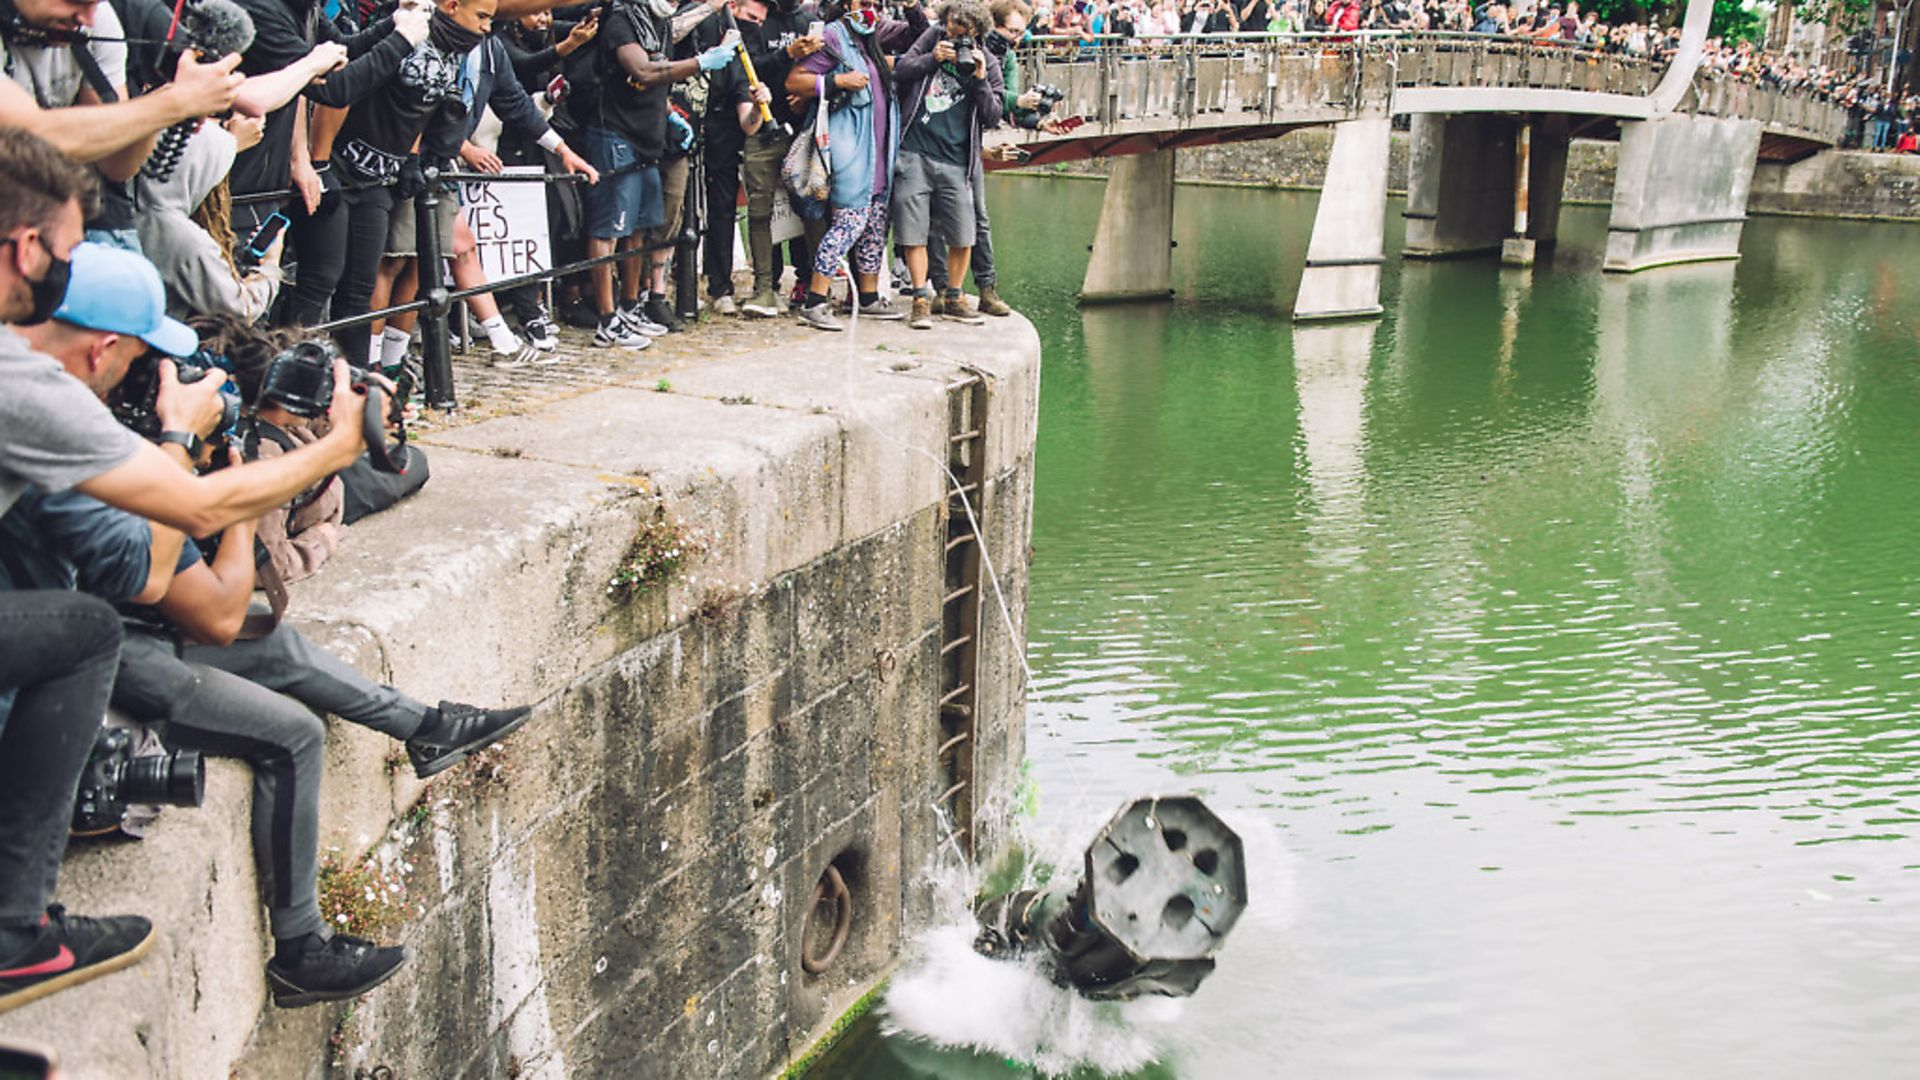 The statue of Colston is pushed into the river Avon. Edward Colston was a slave trader of the late 17th century who played a major role in the development of the city of Bristol, England, on June 7, 2020. (Photo by Giulia Spadafora/NurPhoto via Getty Images) - Credit: NurPhoto via Getty Images